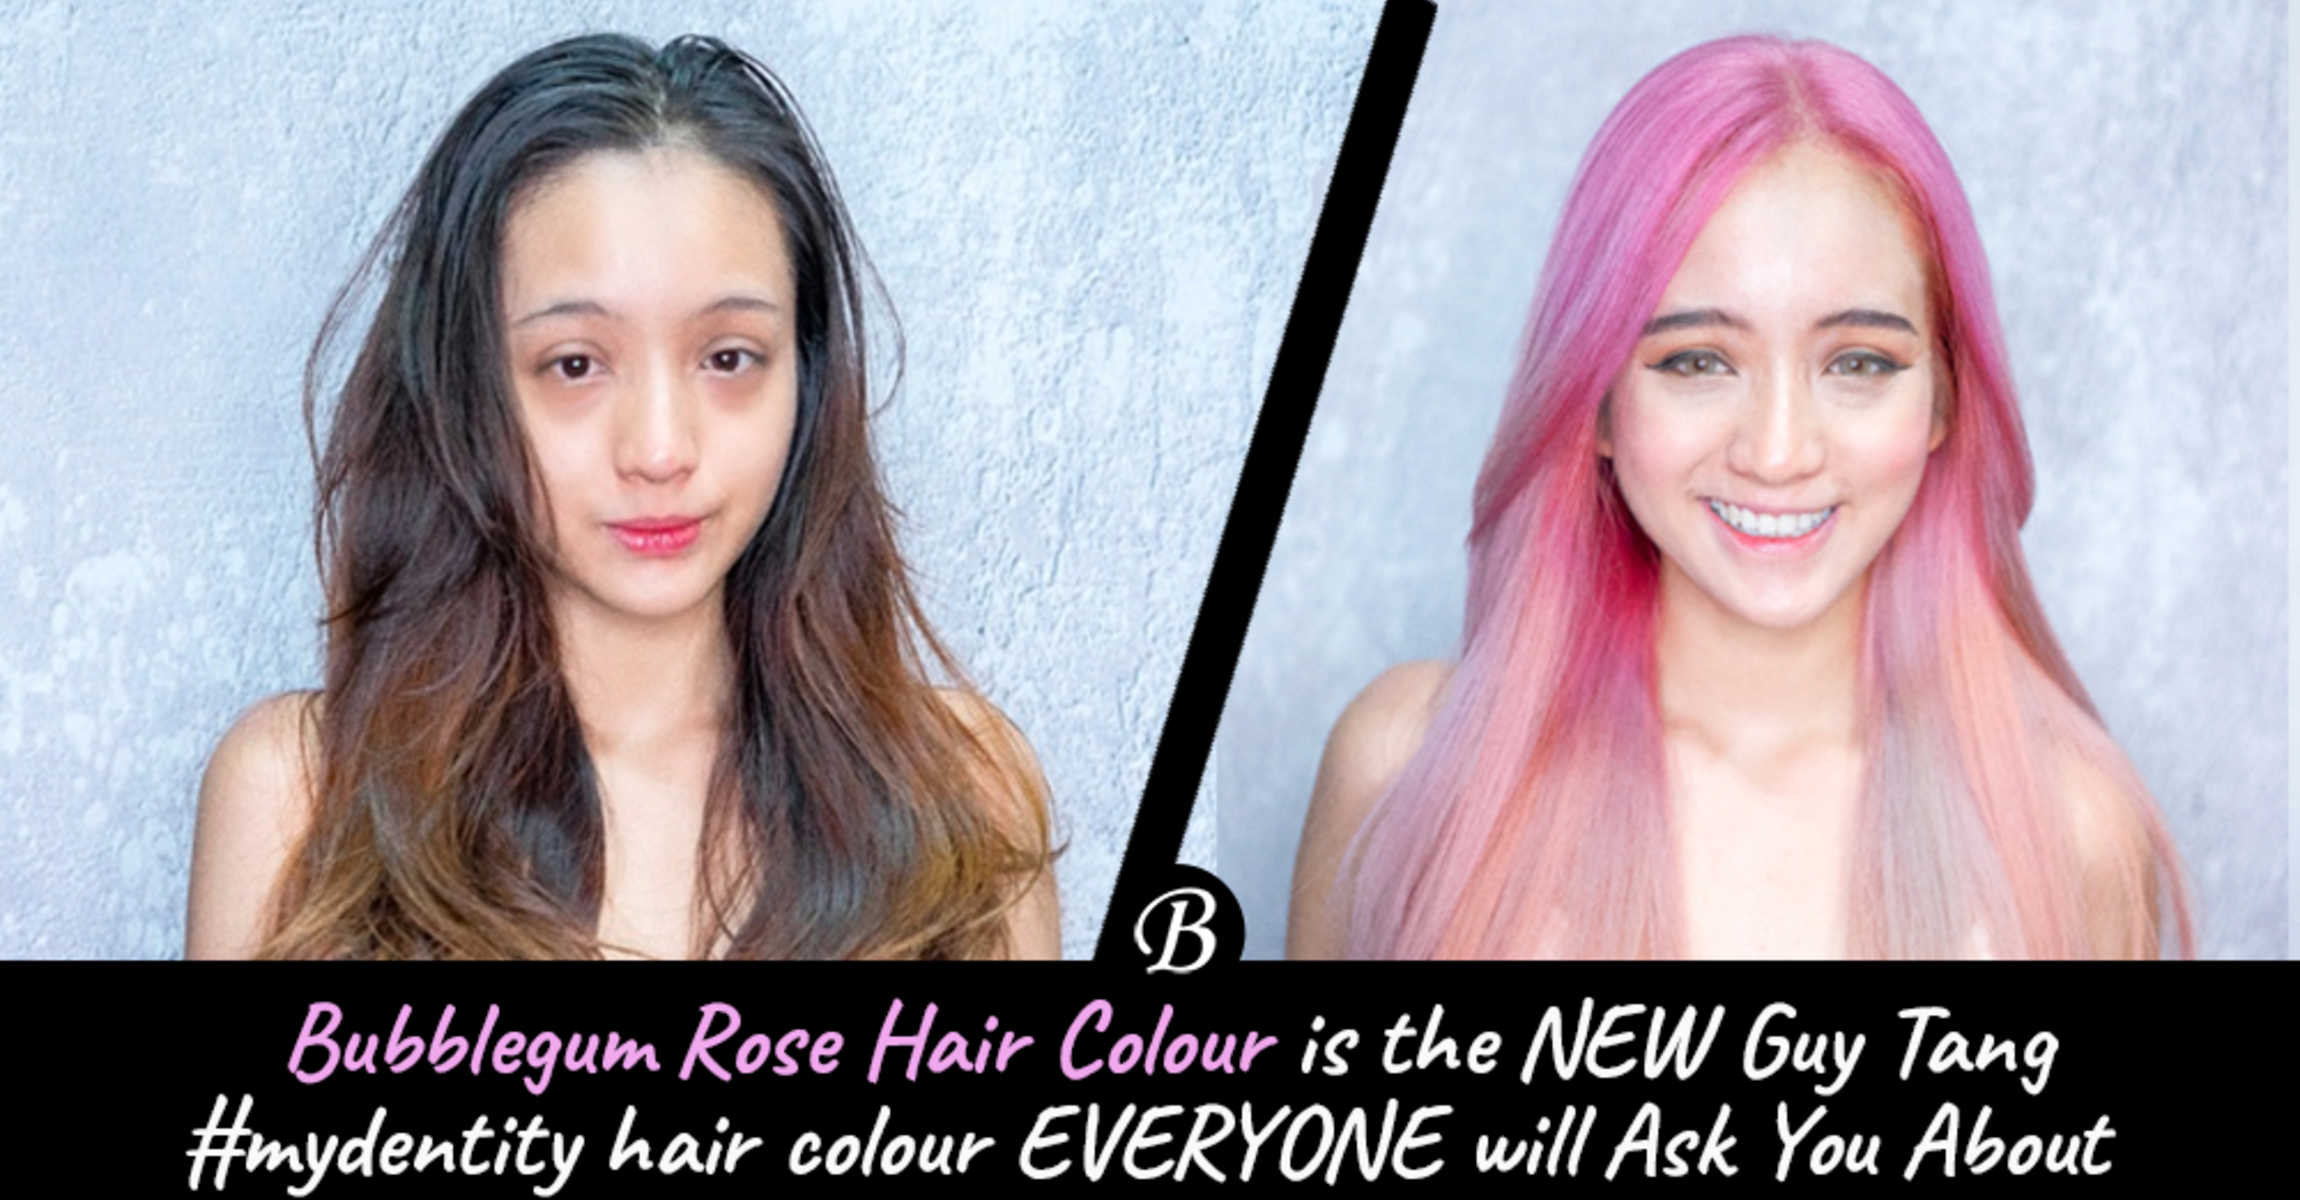 Bubblegum Rose Hair is the Gorgeous New #mydentity hair colour Everyone Will Ask You About